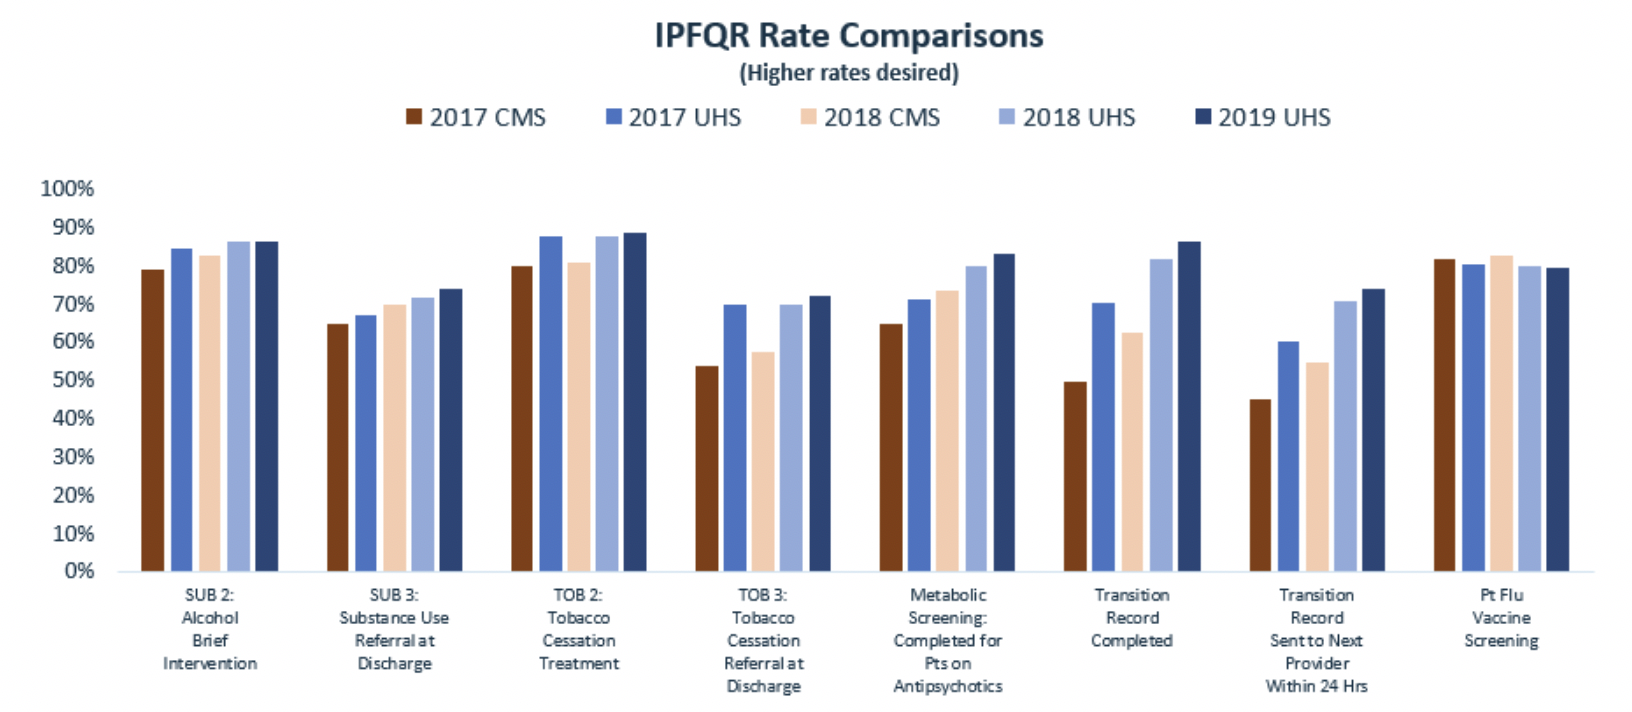 IPFQR Rate Comparisons